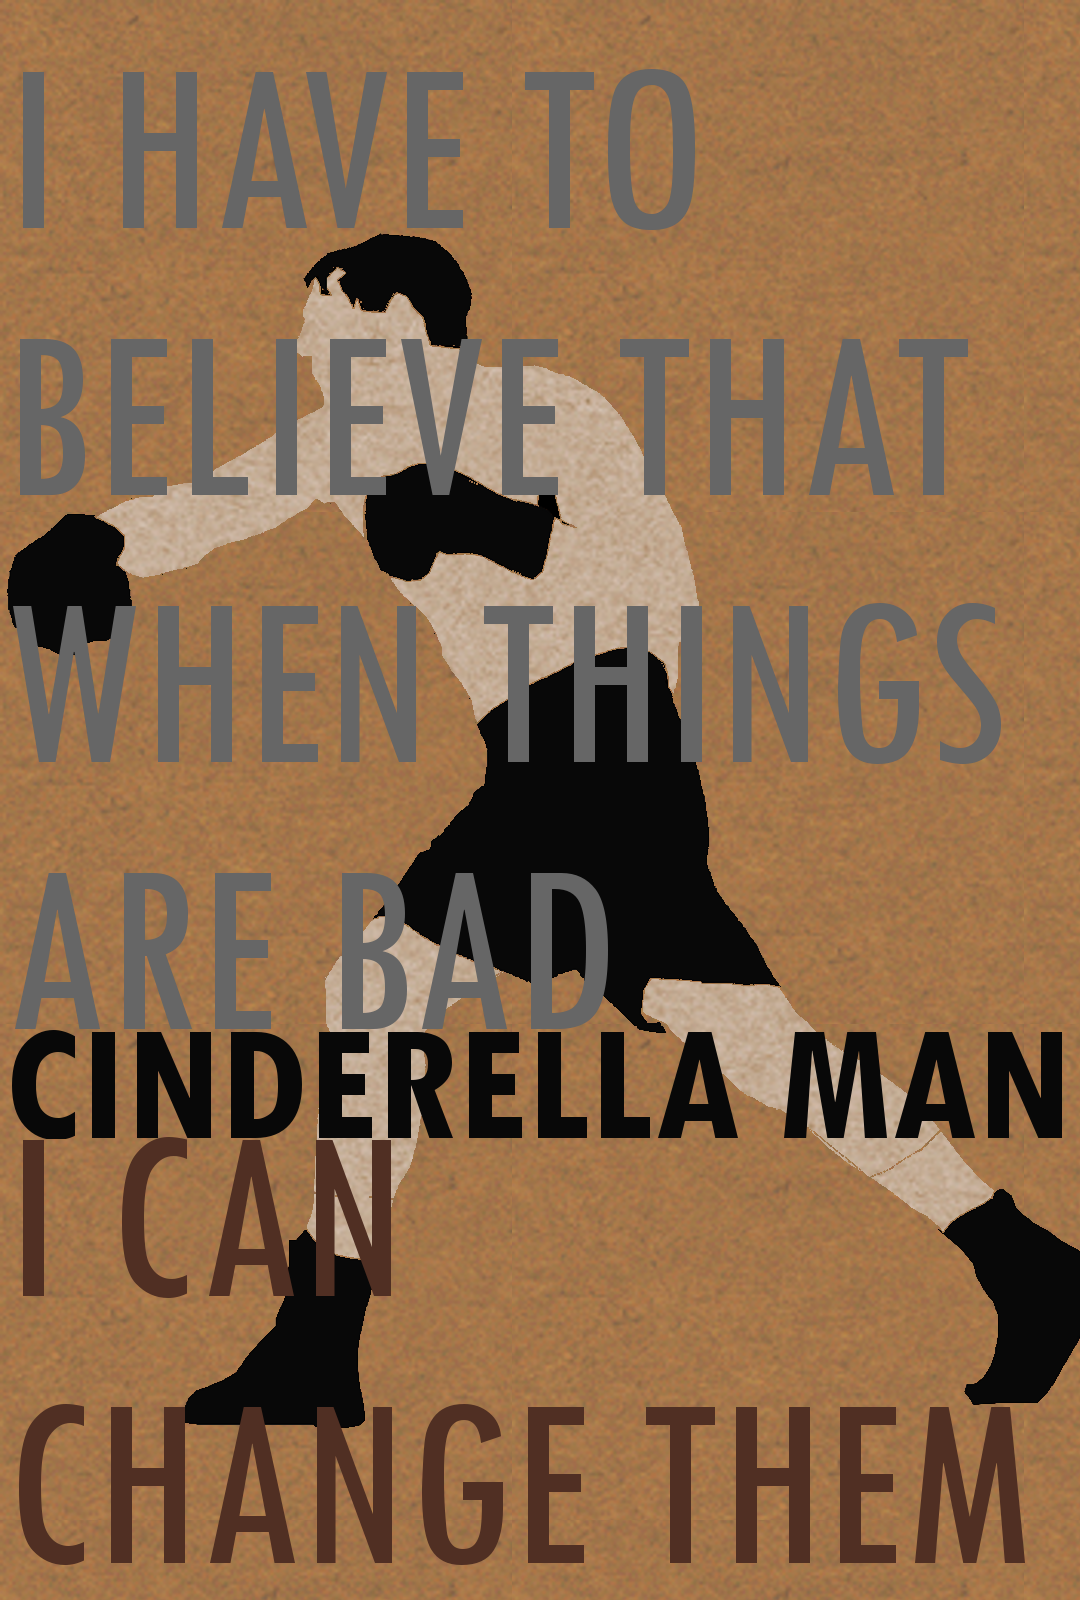 Cinderella Man Quotes Inspiration Quote From Cinderella Mangreat Movie Wild And Whirling Words